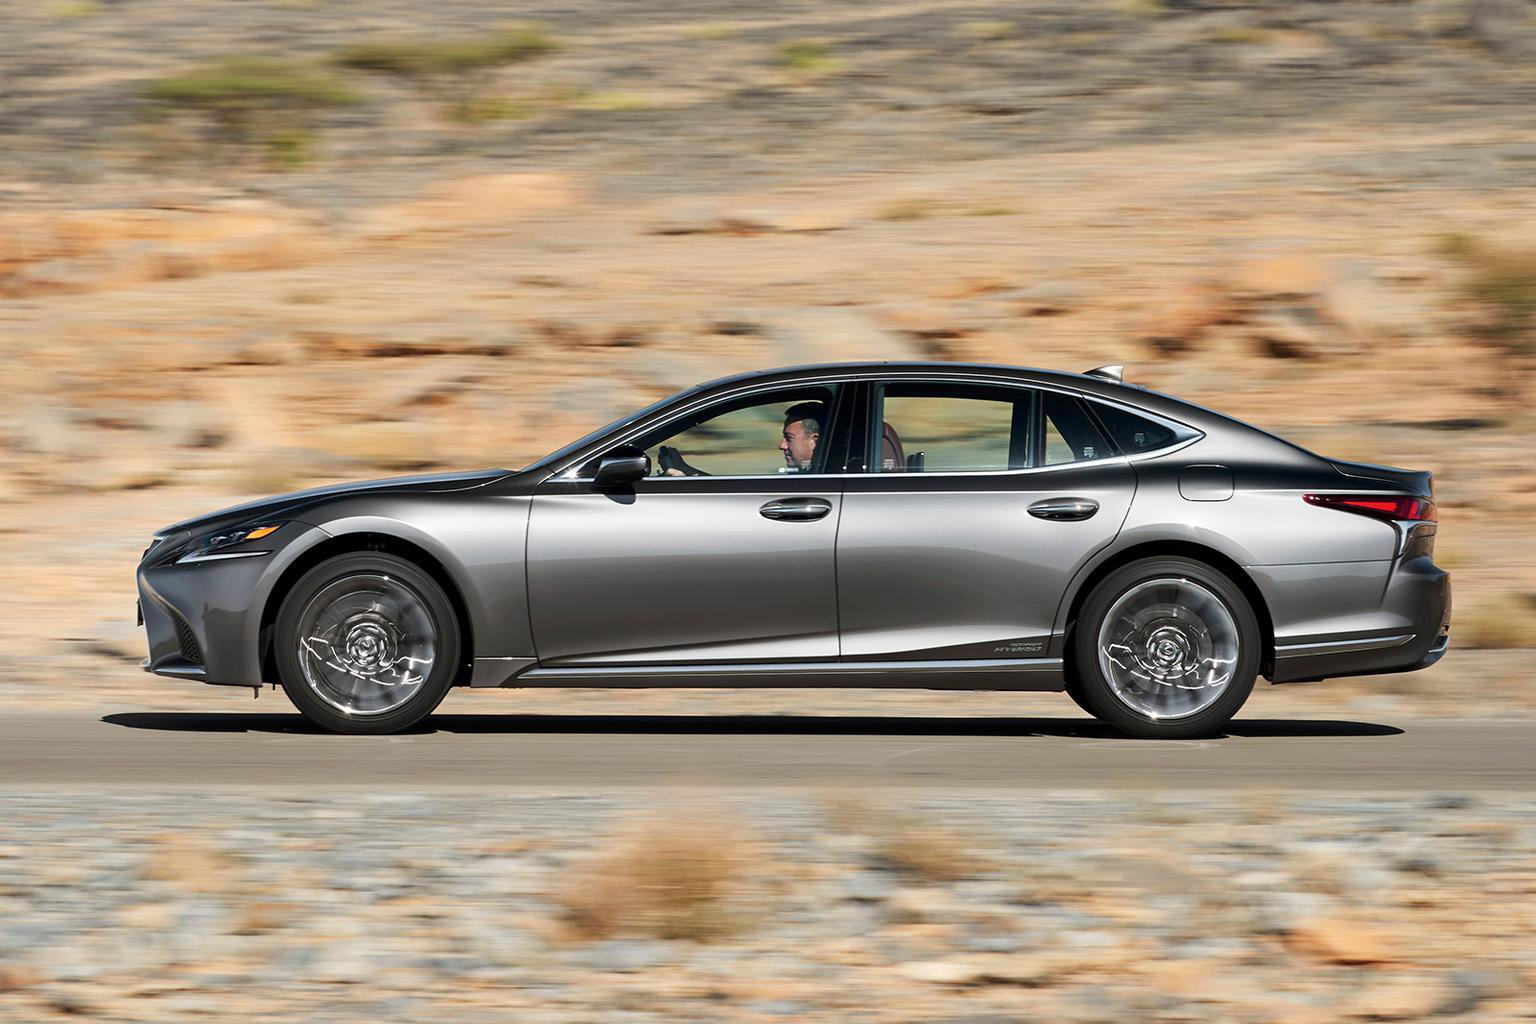 2018 Lexus LS 500h review – verdict